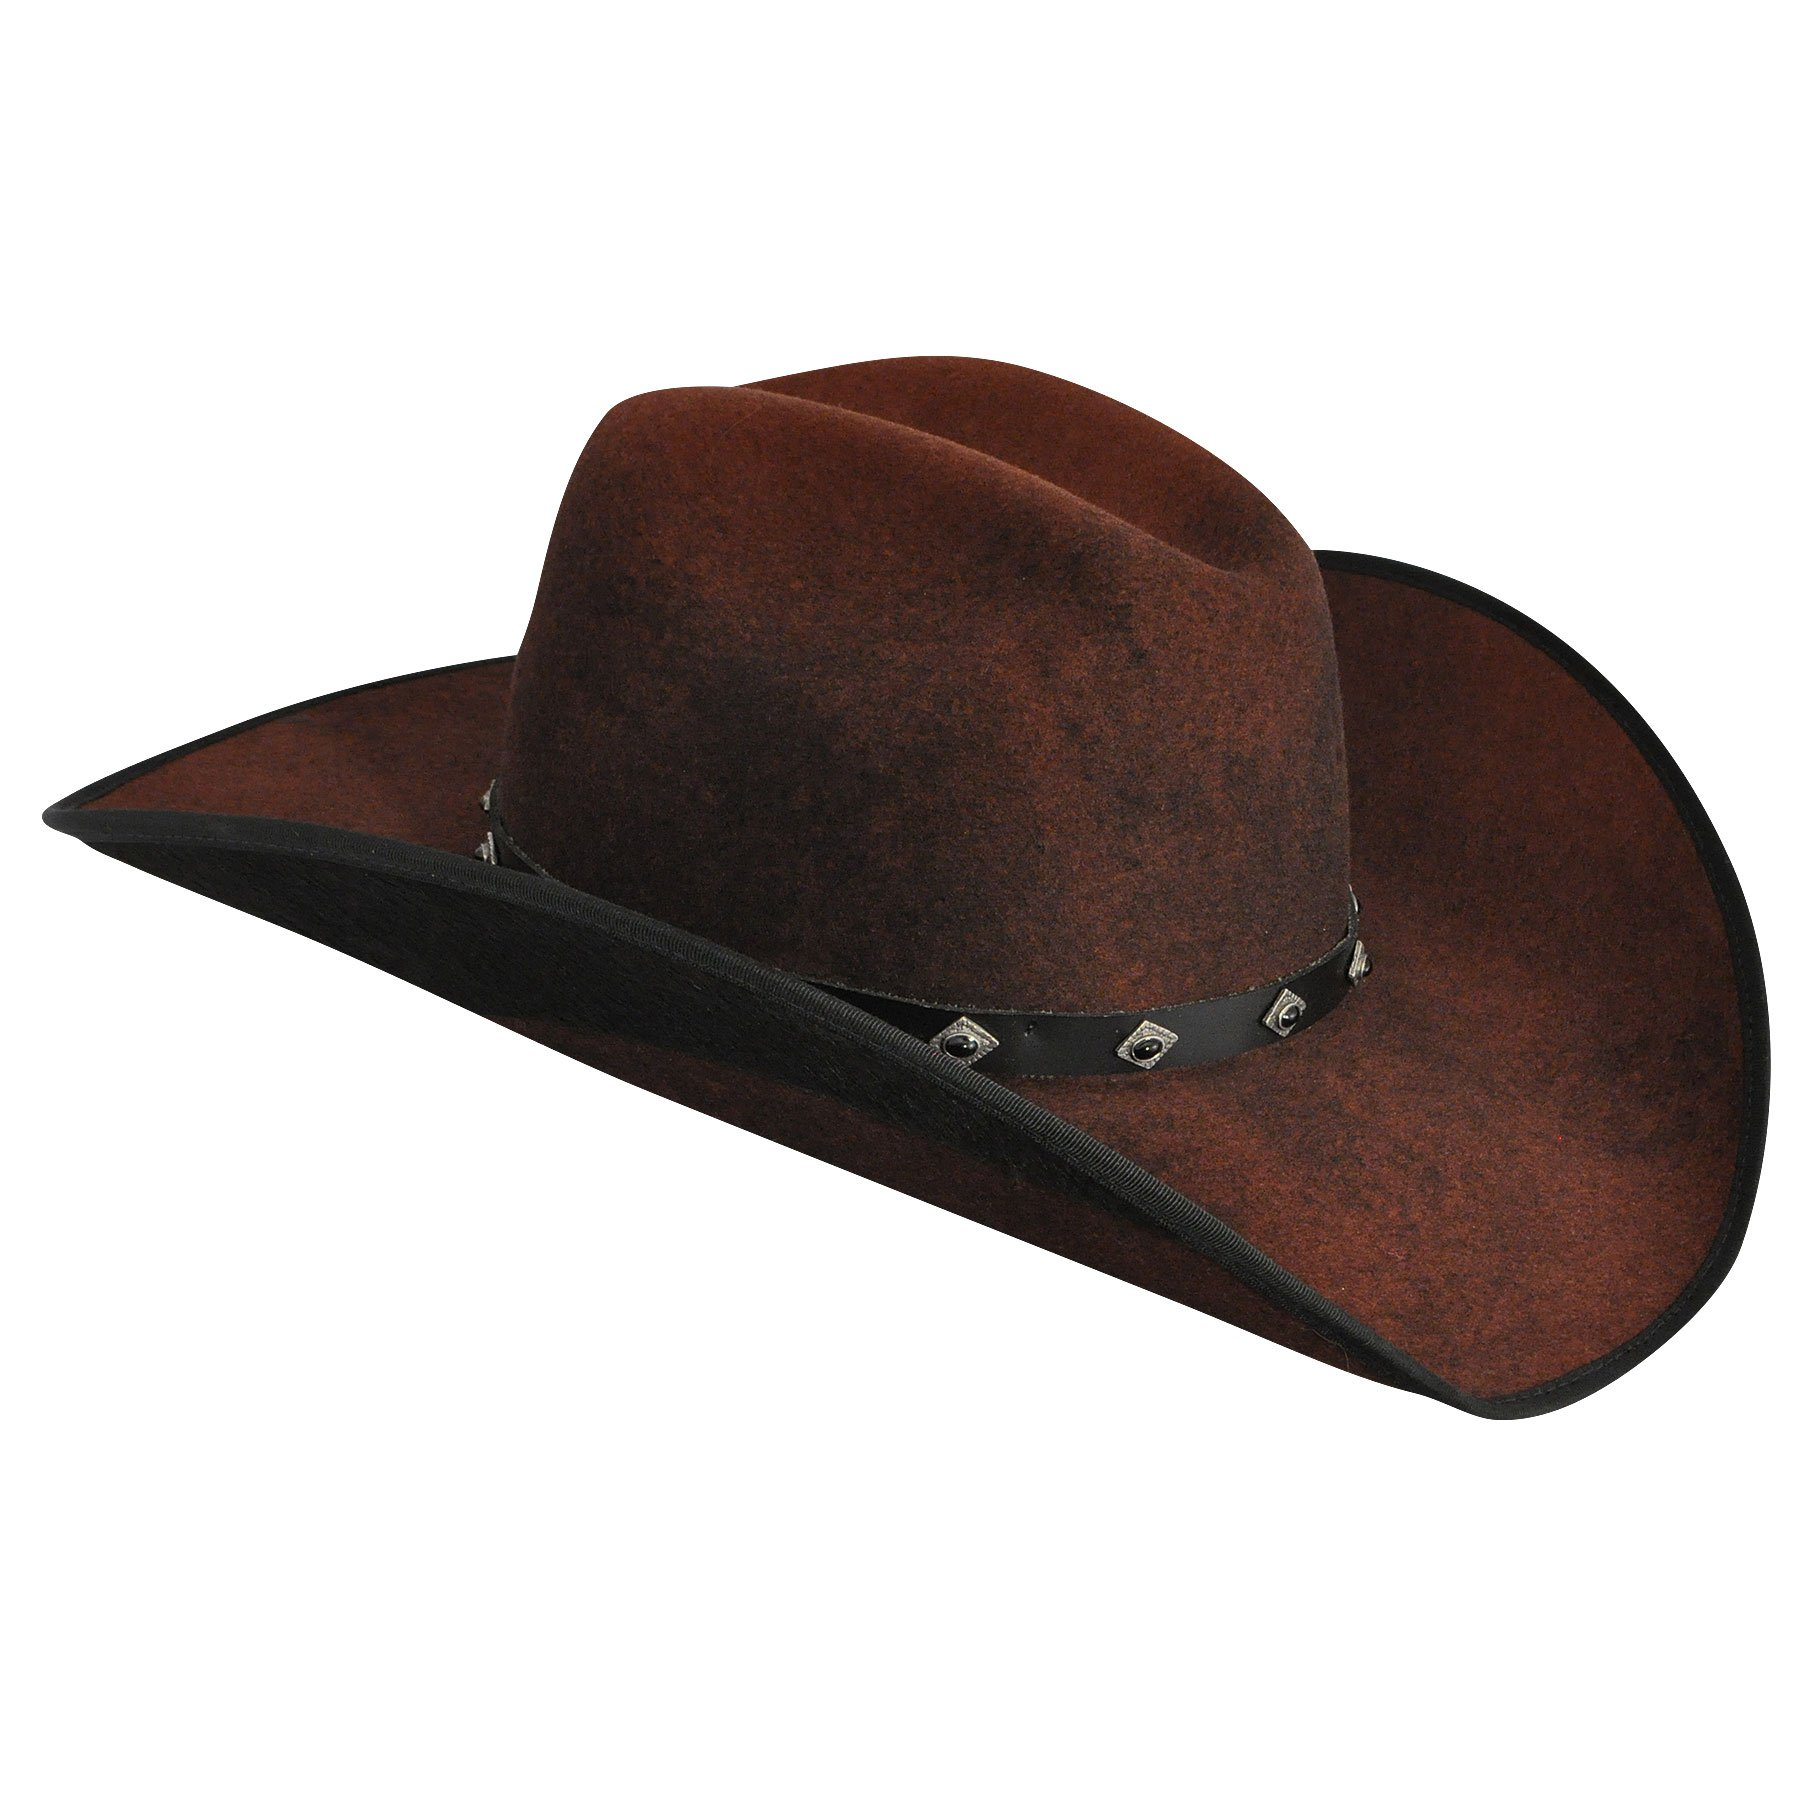 Bailey Western Female Renegade By Bailey Cadence Western Hat Light Bay 7 1/8 by RENEGADE by Bailey Western